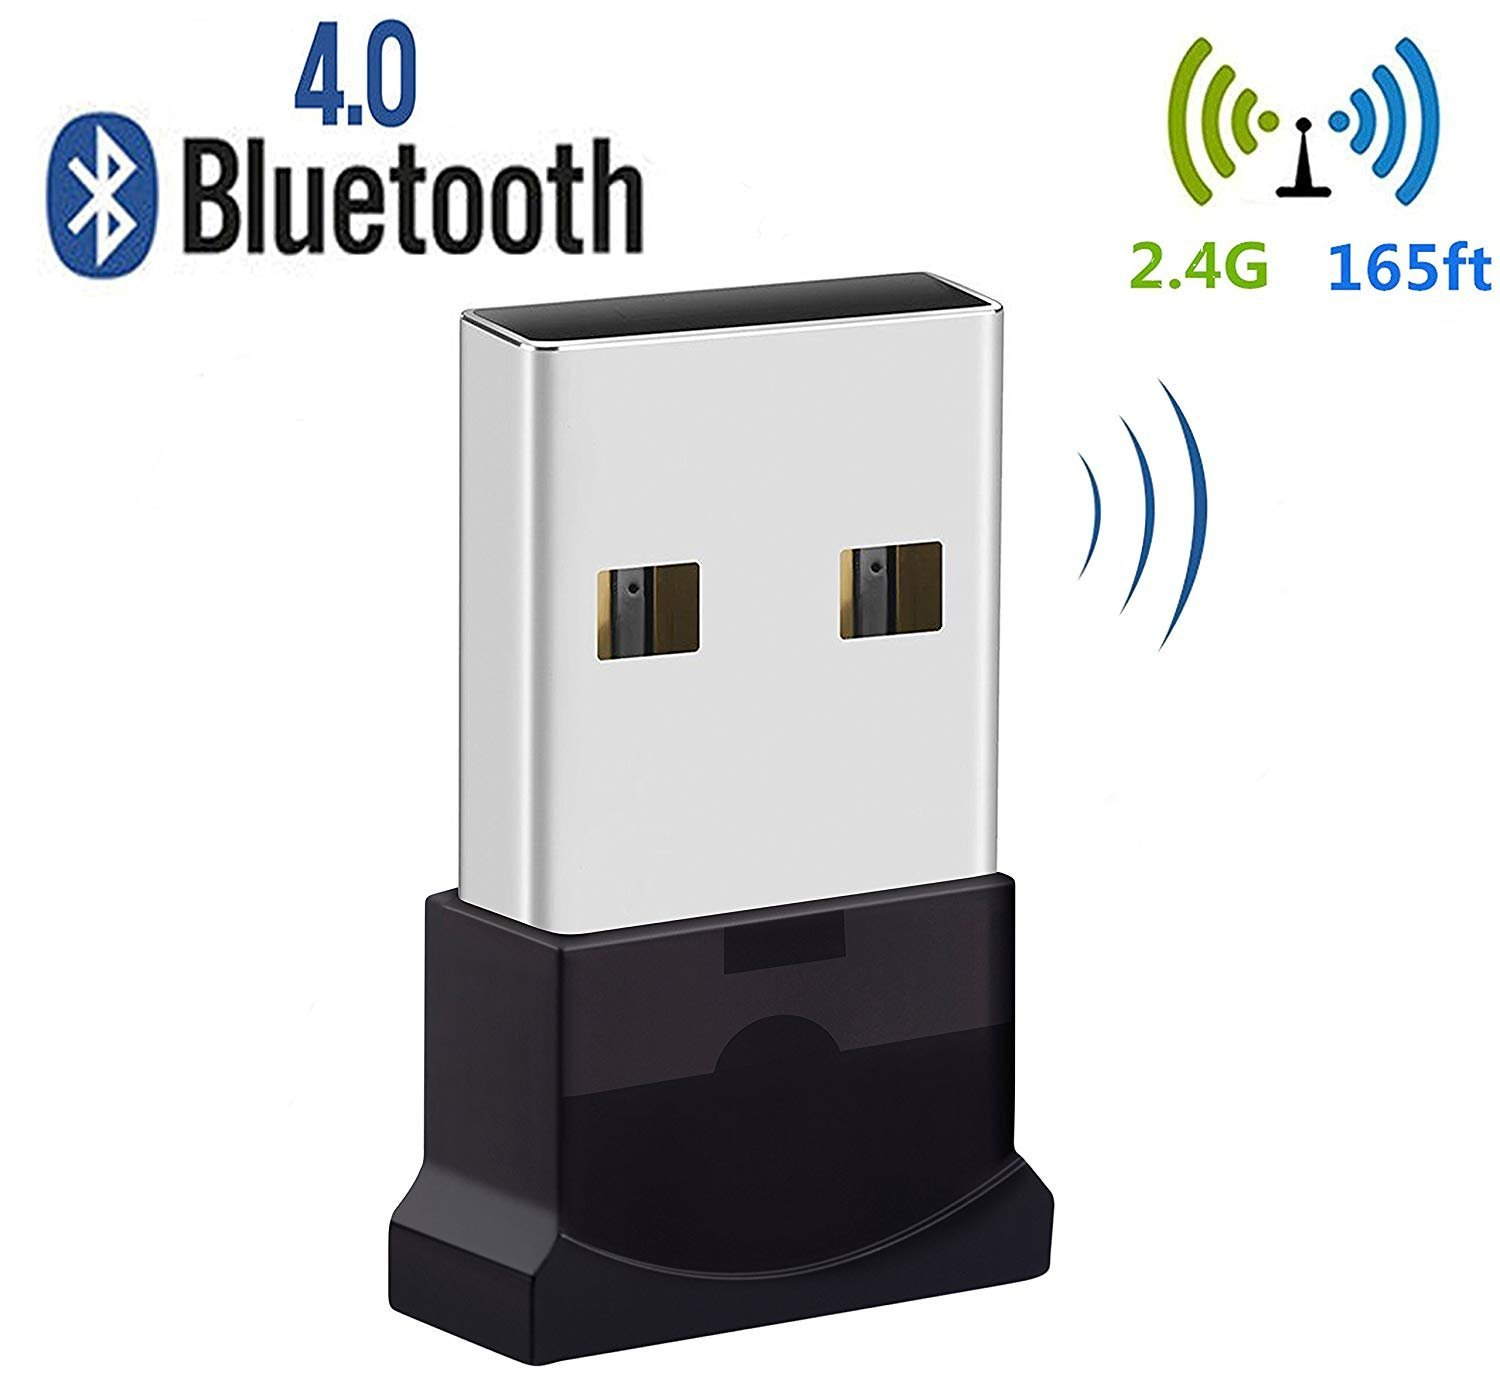 Bluetooth USB Adapter, Bluetooth 4.0 USB Dongle, Low Energy for PC, Wireless Dongle, for Stereo Music, Keyboard, Mouse, Support Windows 10 8.1 8 7 XP vista by JFen (Image #1)